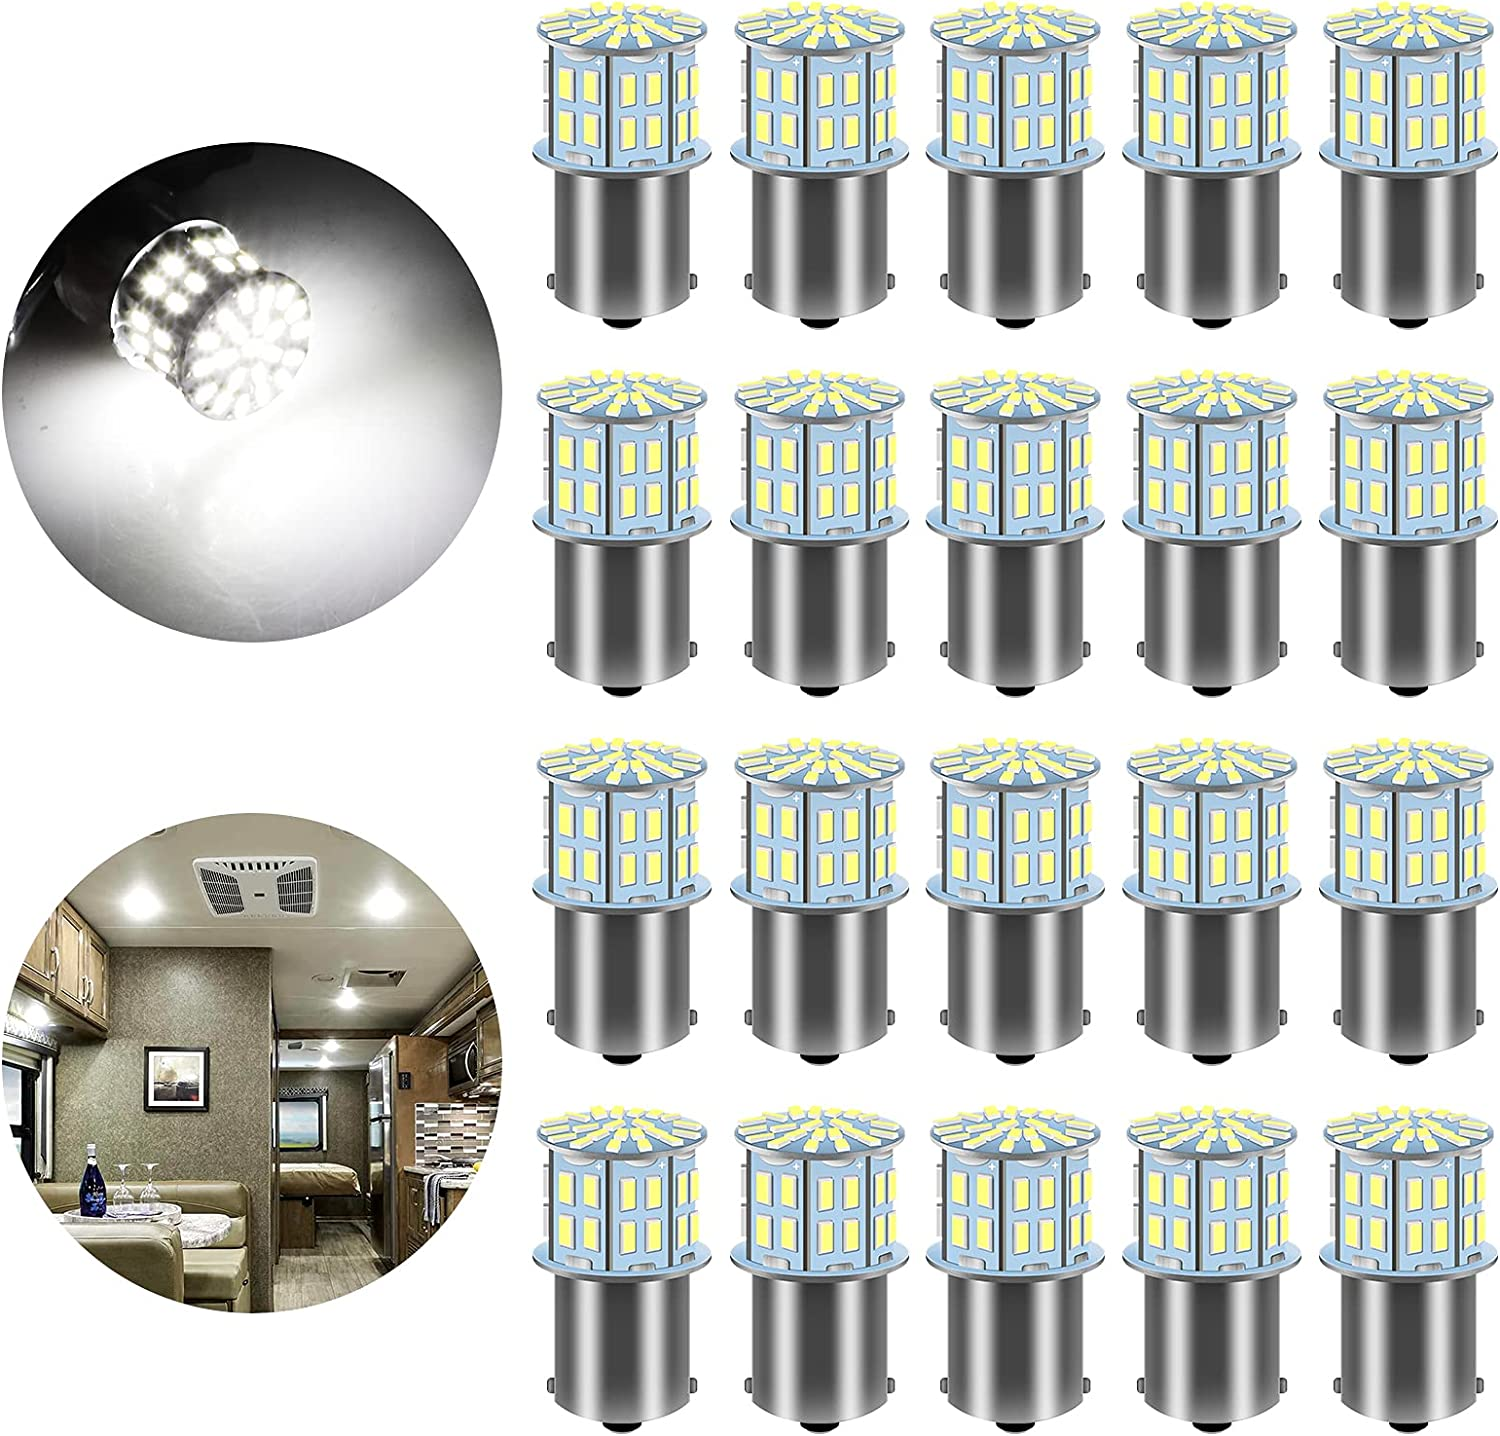 Linkstyle 20PCS 1156 1141 1073 7506 1003 BA15S RV Led Light Bulbs, Replacement Bulbs for 12 Volt RV Super Bright 3014 50SMD Indoor Lights White Lighting for Trailer Camper Boat Motorhome Car, White